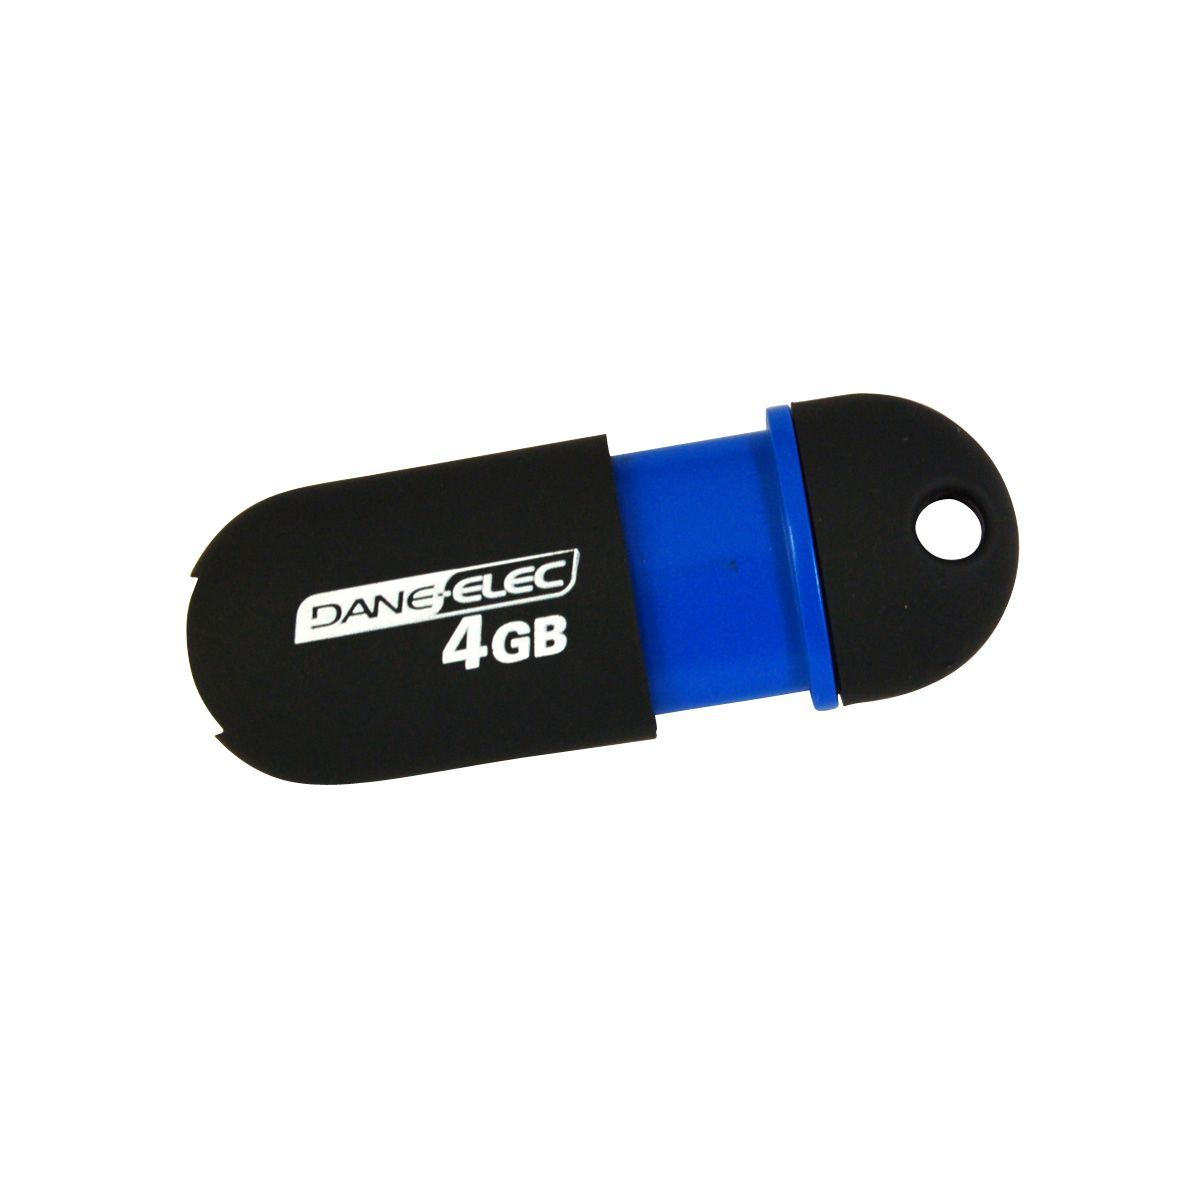 USB 2.0 4GB Flash Memory Drive - Black, Blue